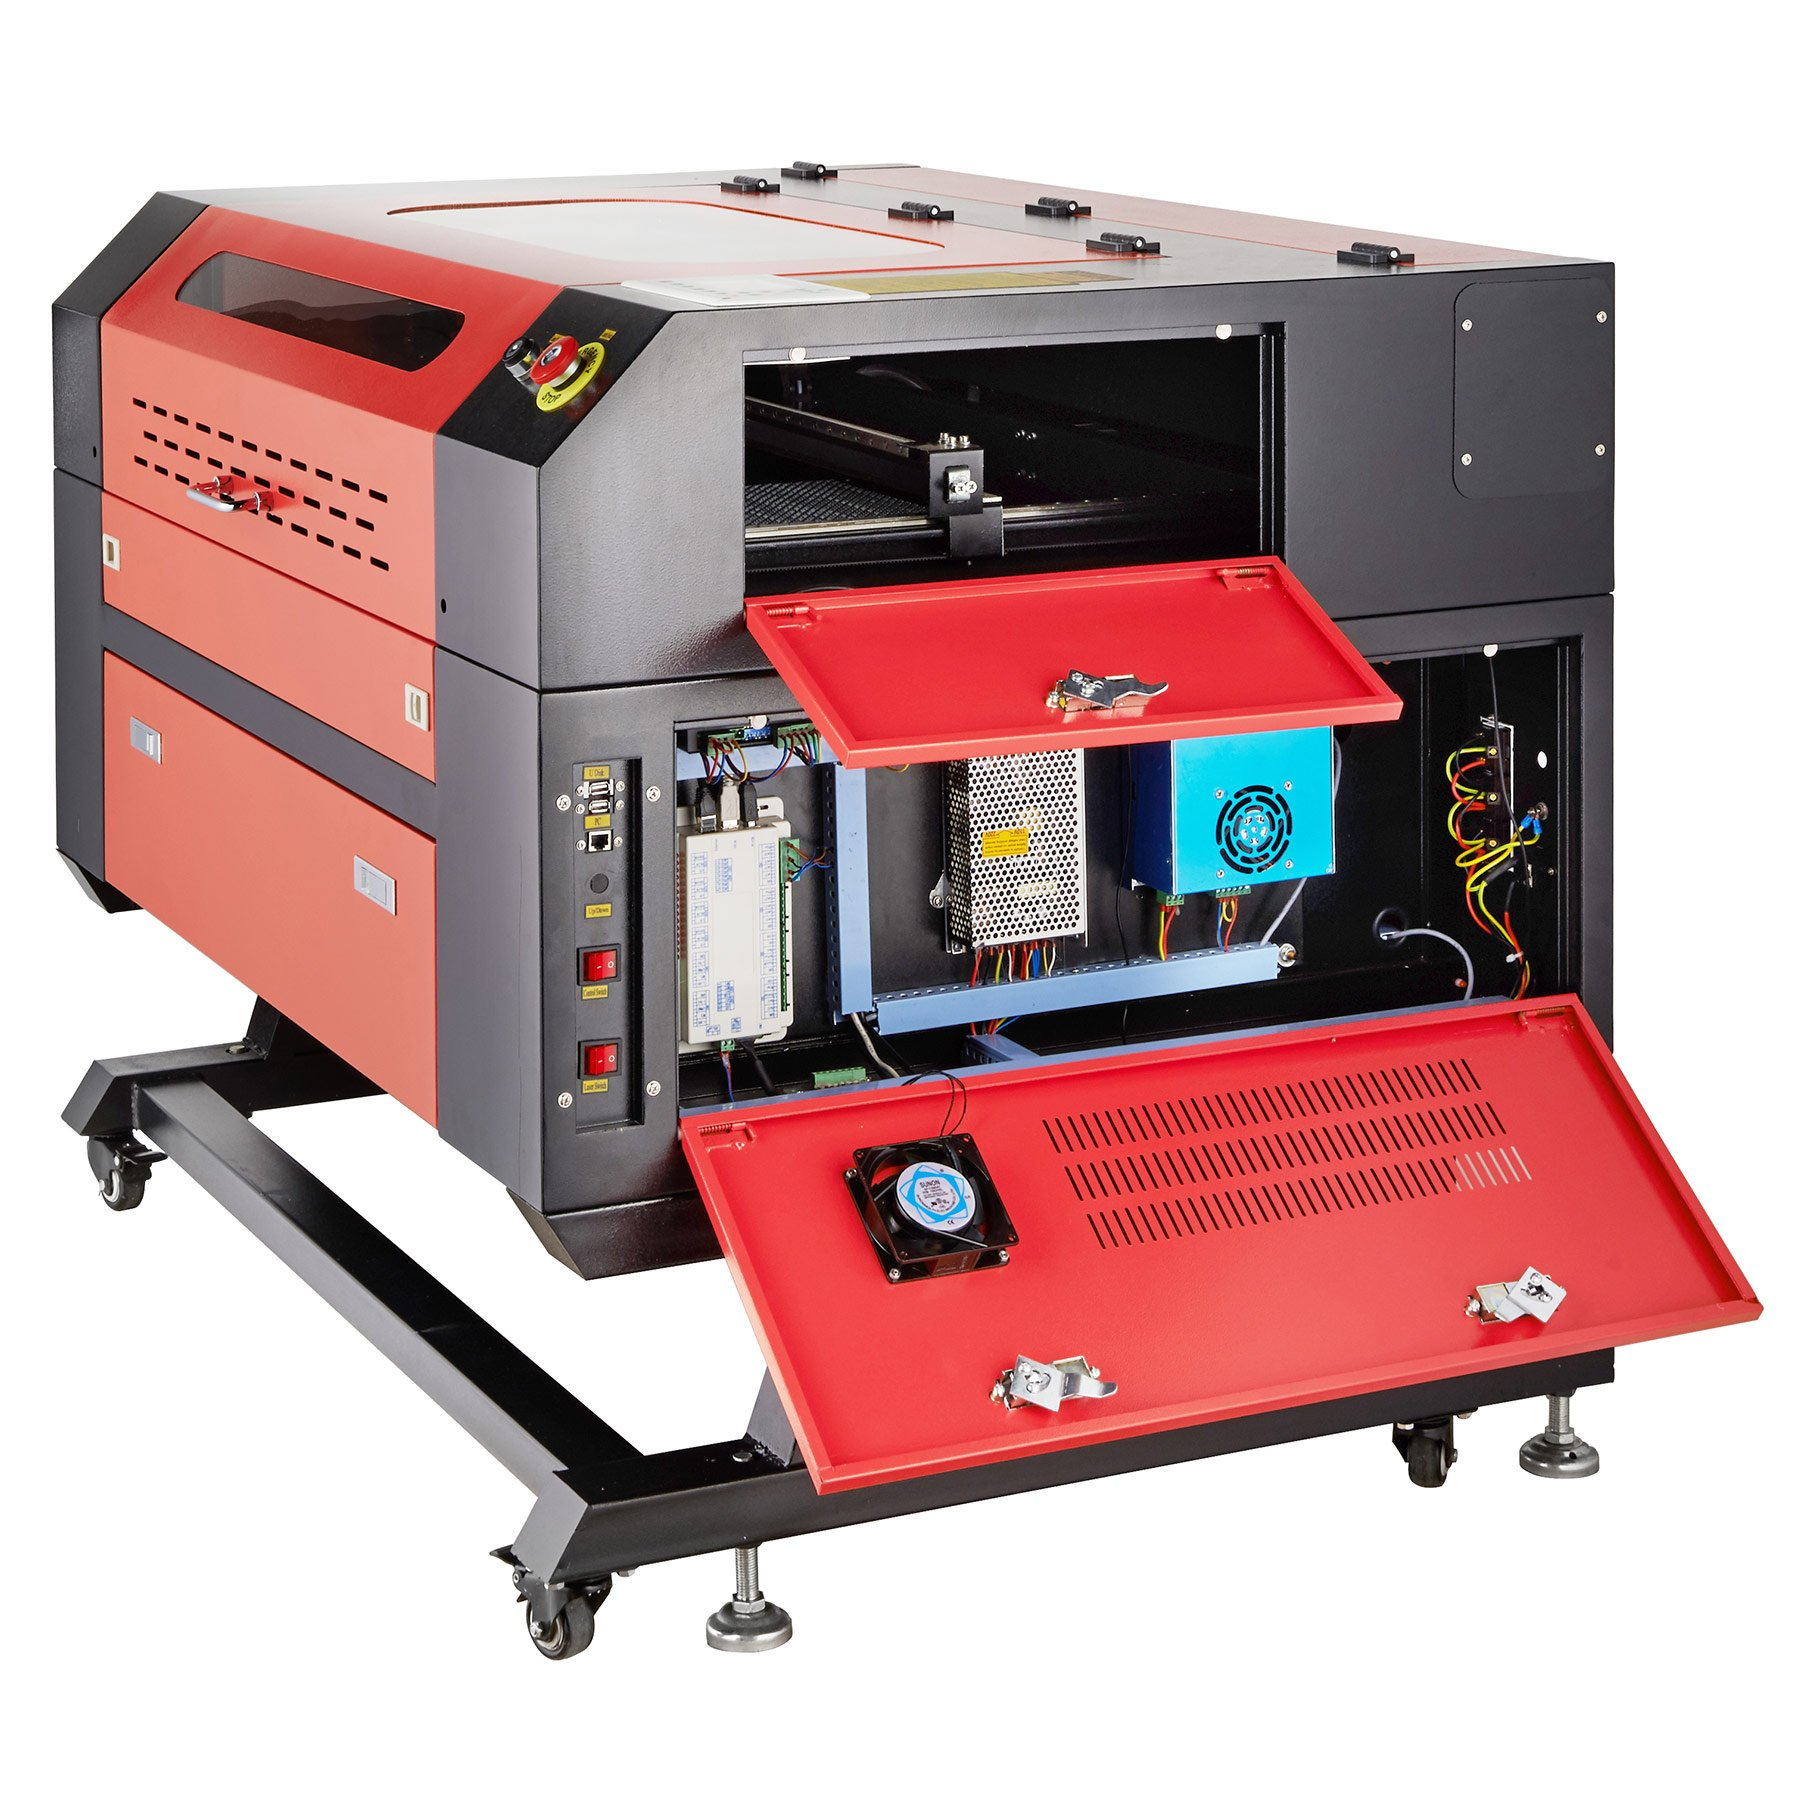 Orion Motor Tech 60W 110V CO2 Laser Engraving Machine Laser Engraver